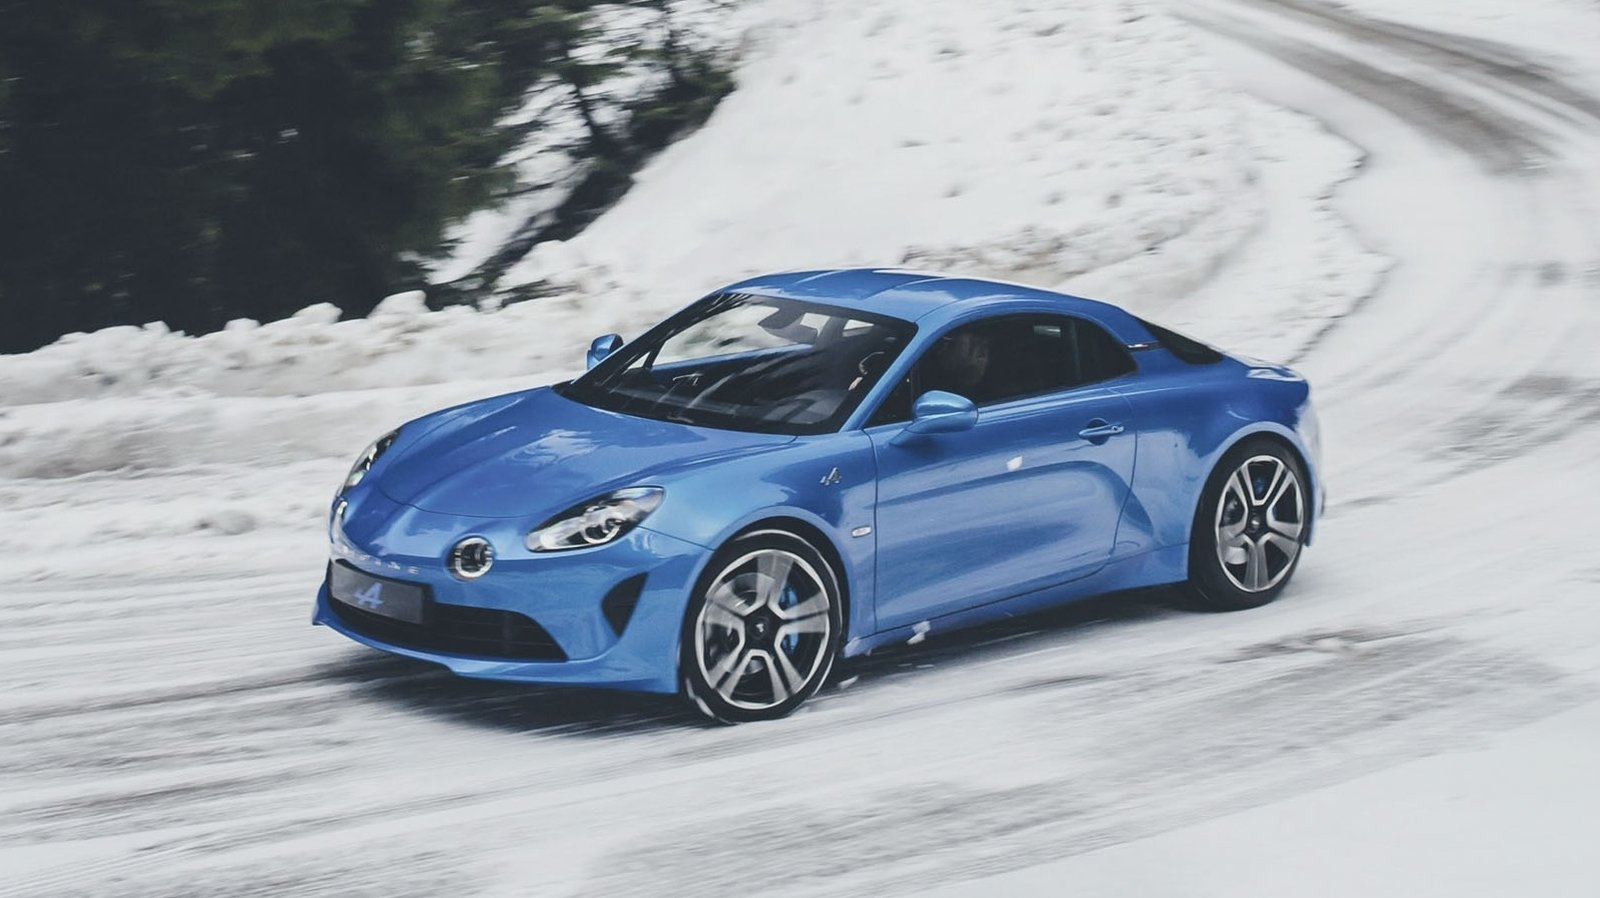 2018 alpine a110 premiere edition news top speed. Black Bedroom Furniture Sets. Home Design Ideas